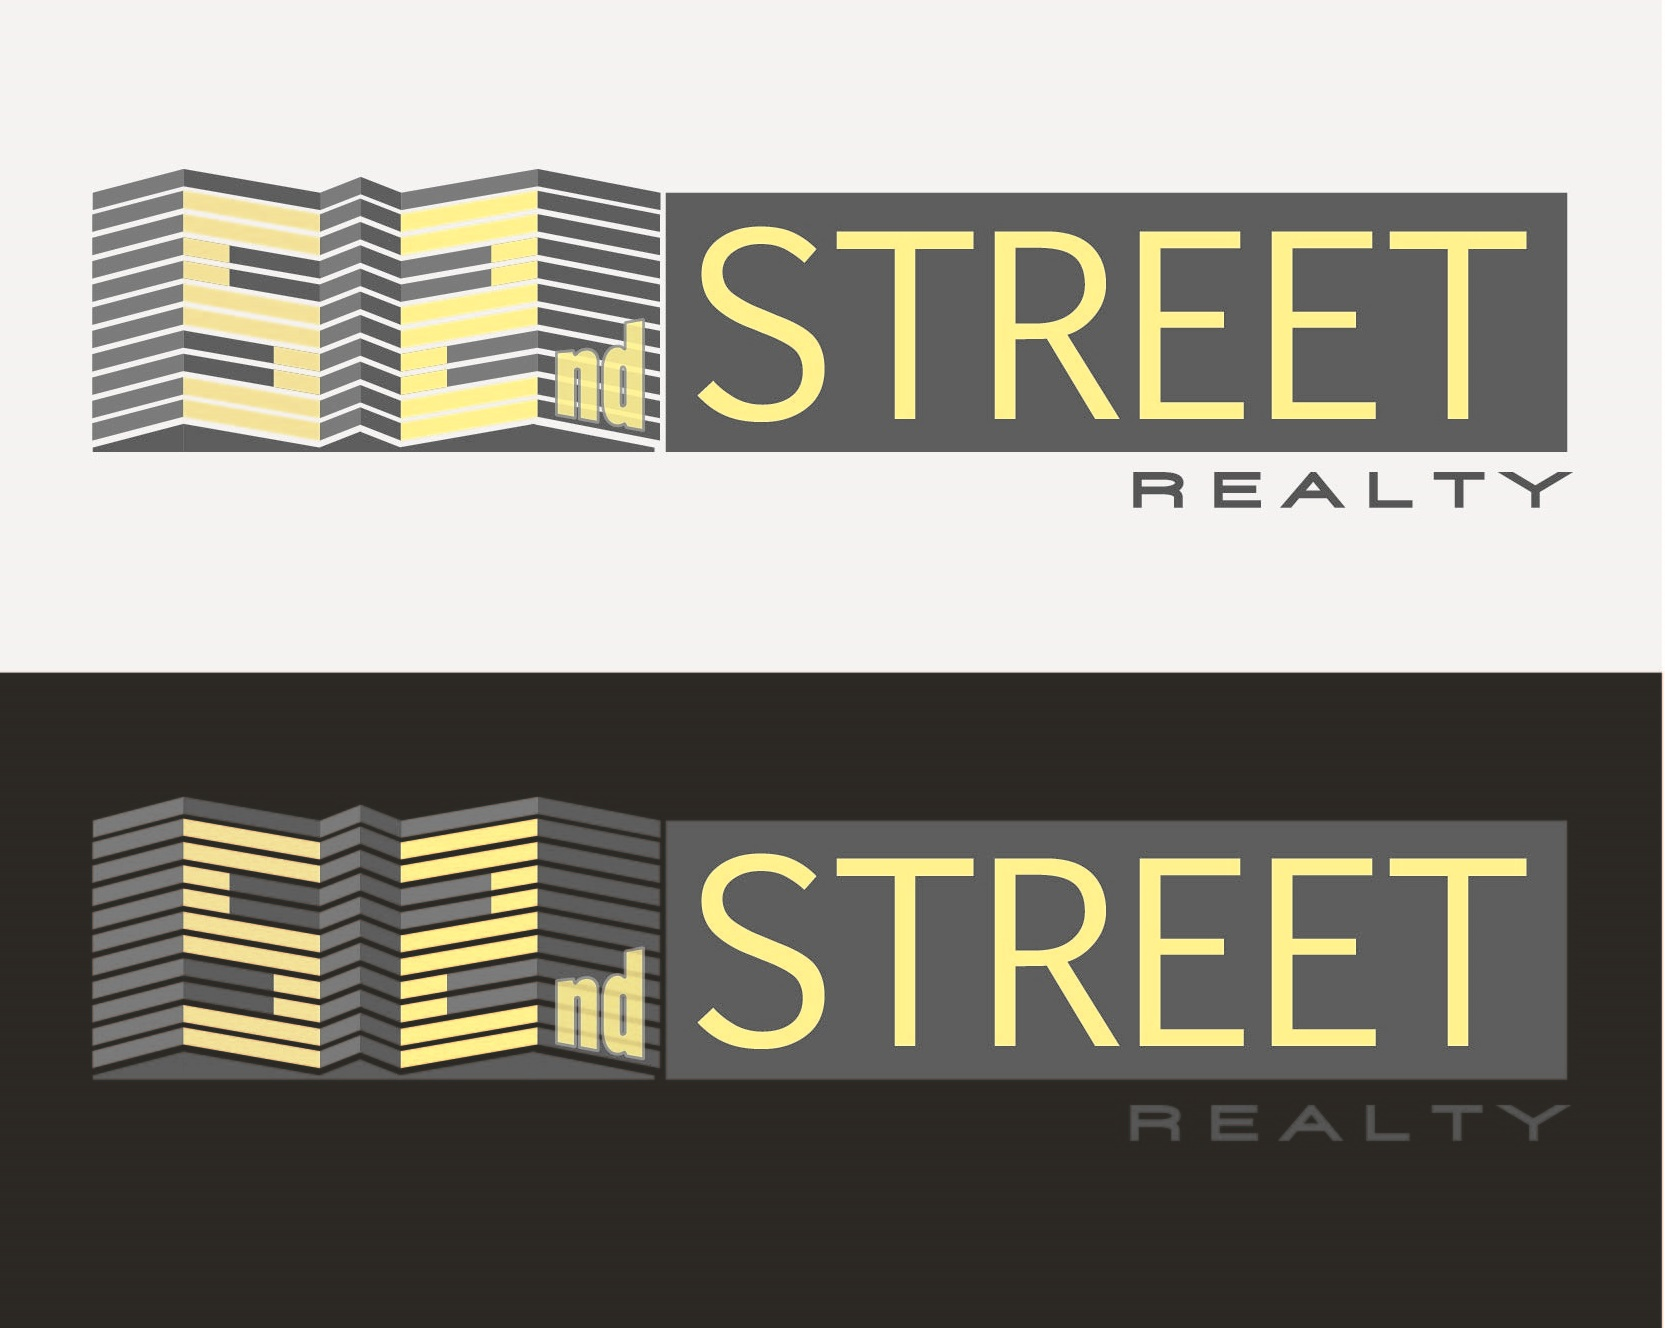 Logo Design by iwyn - Entry No. 37 in the Logo Design Contest 52nd Street Realty Logo Design.